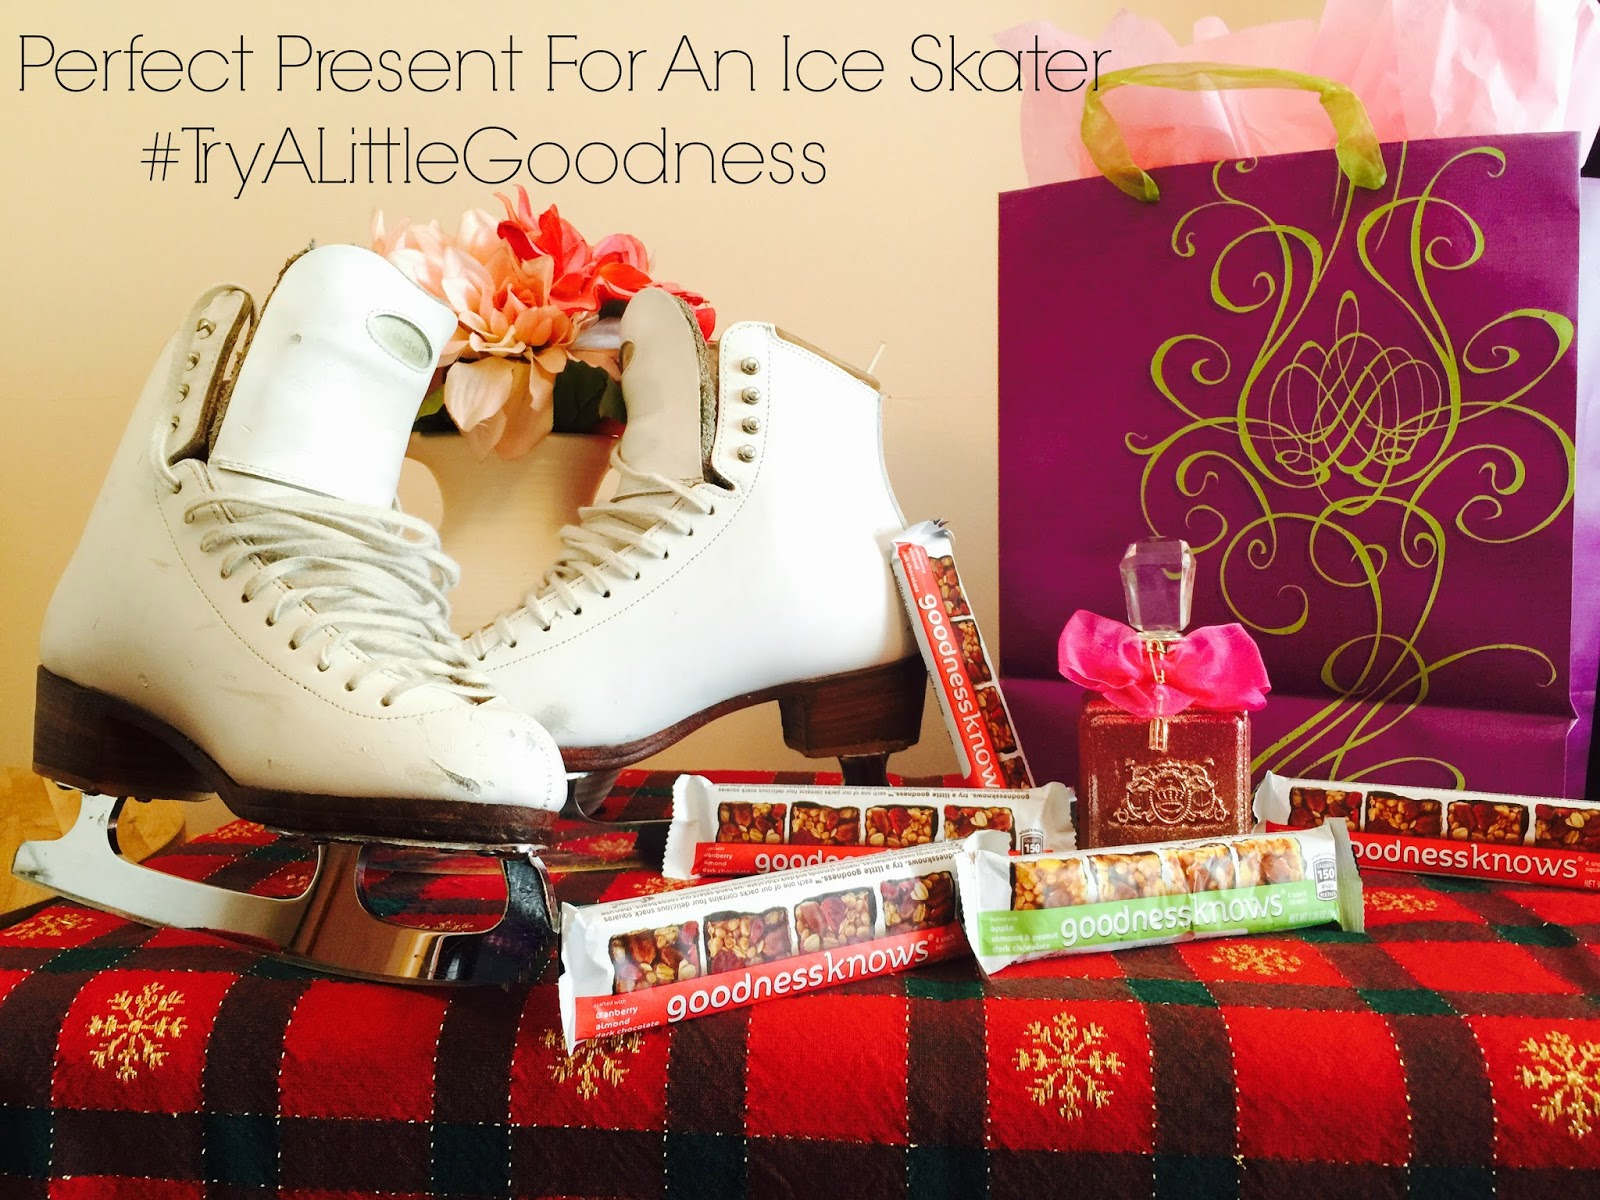 goodness knows, goodness knows squares, how to get toned, ice skating, perfect present for an ice skater,